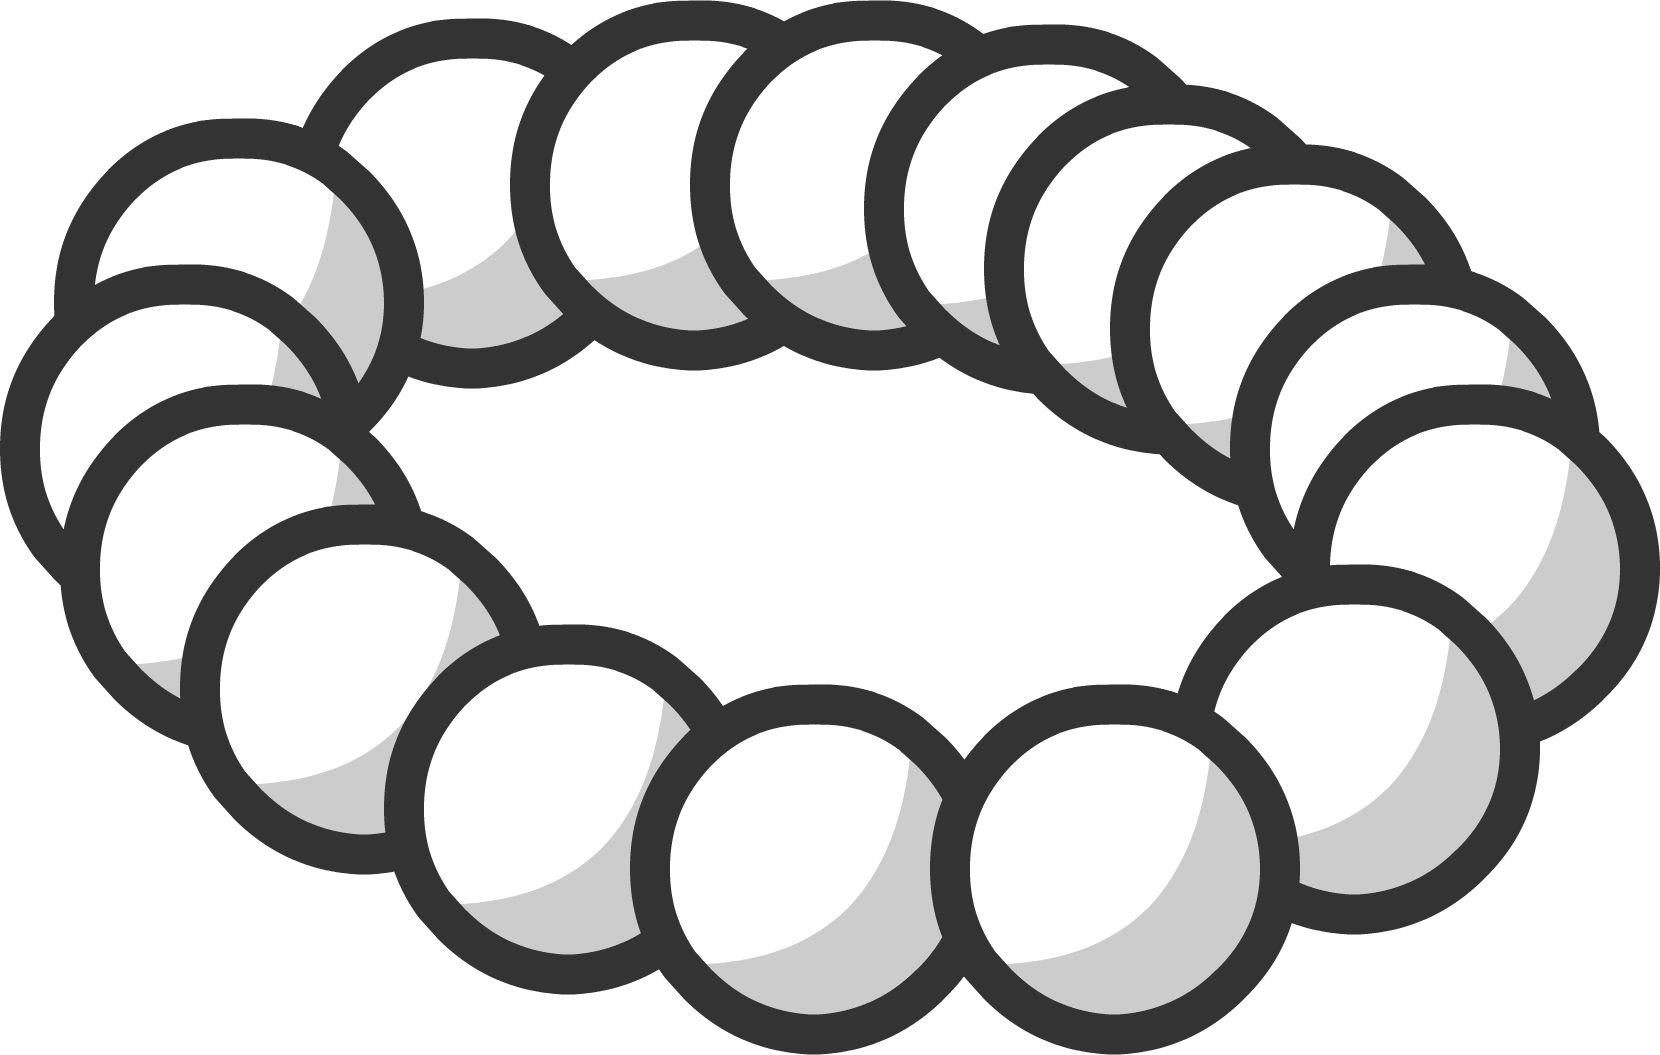 royalty free Pearl club penguin wiki. Necklace black and white clipart